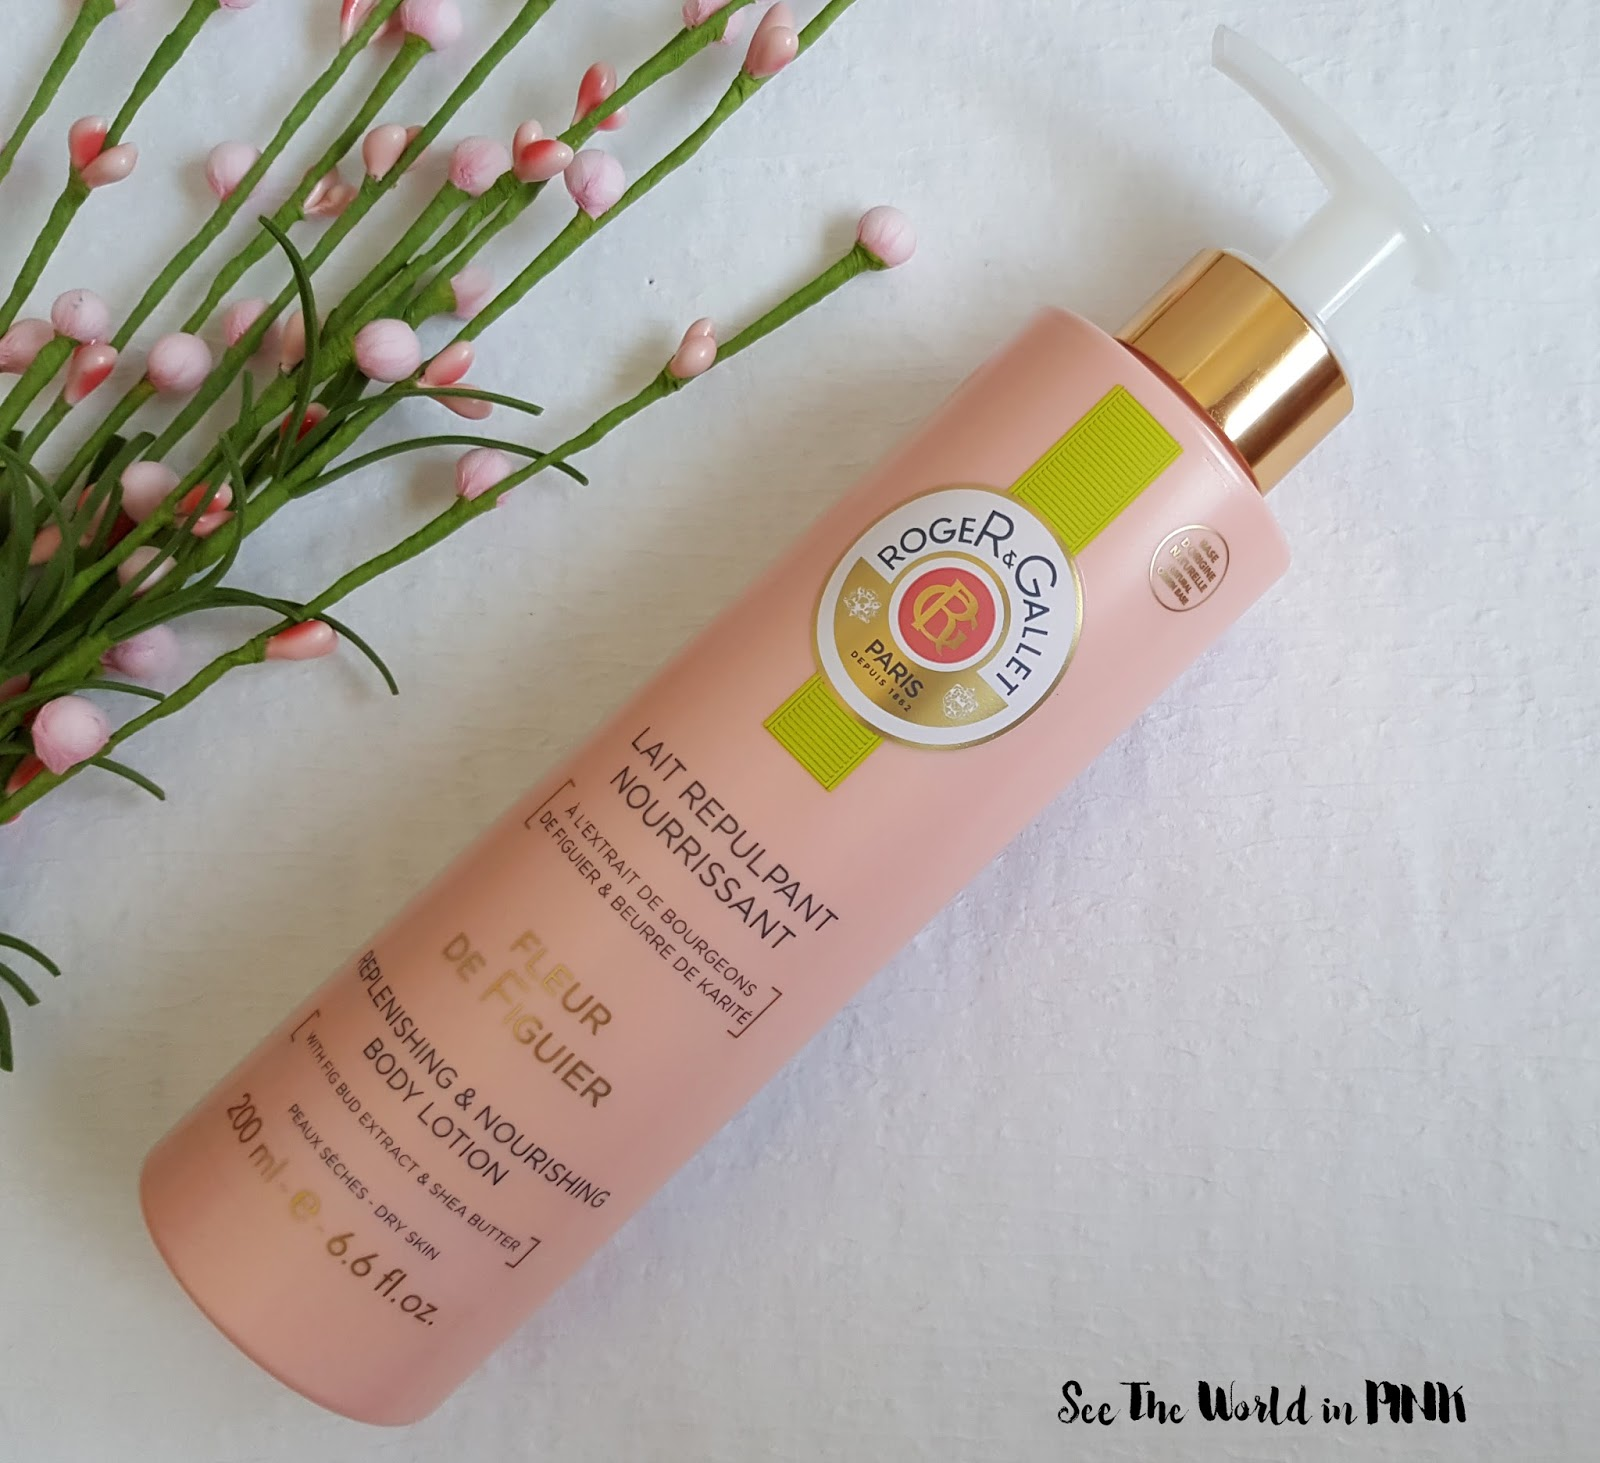 See The World In Pink July 2017 Biore Body Lotion Extra Rich Nourish 200ml Skincare Sunday Roger Gallet Fleur De Figuier Replenishing Nourishing